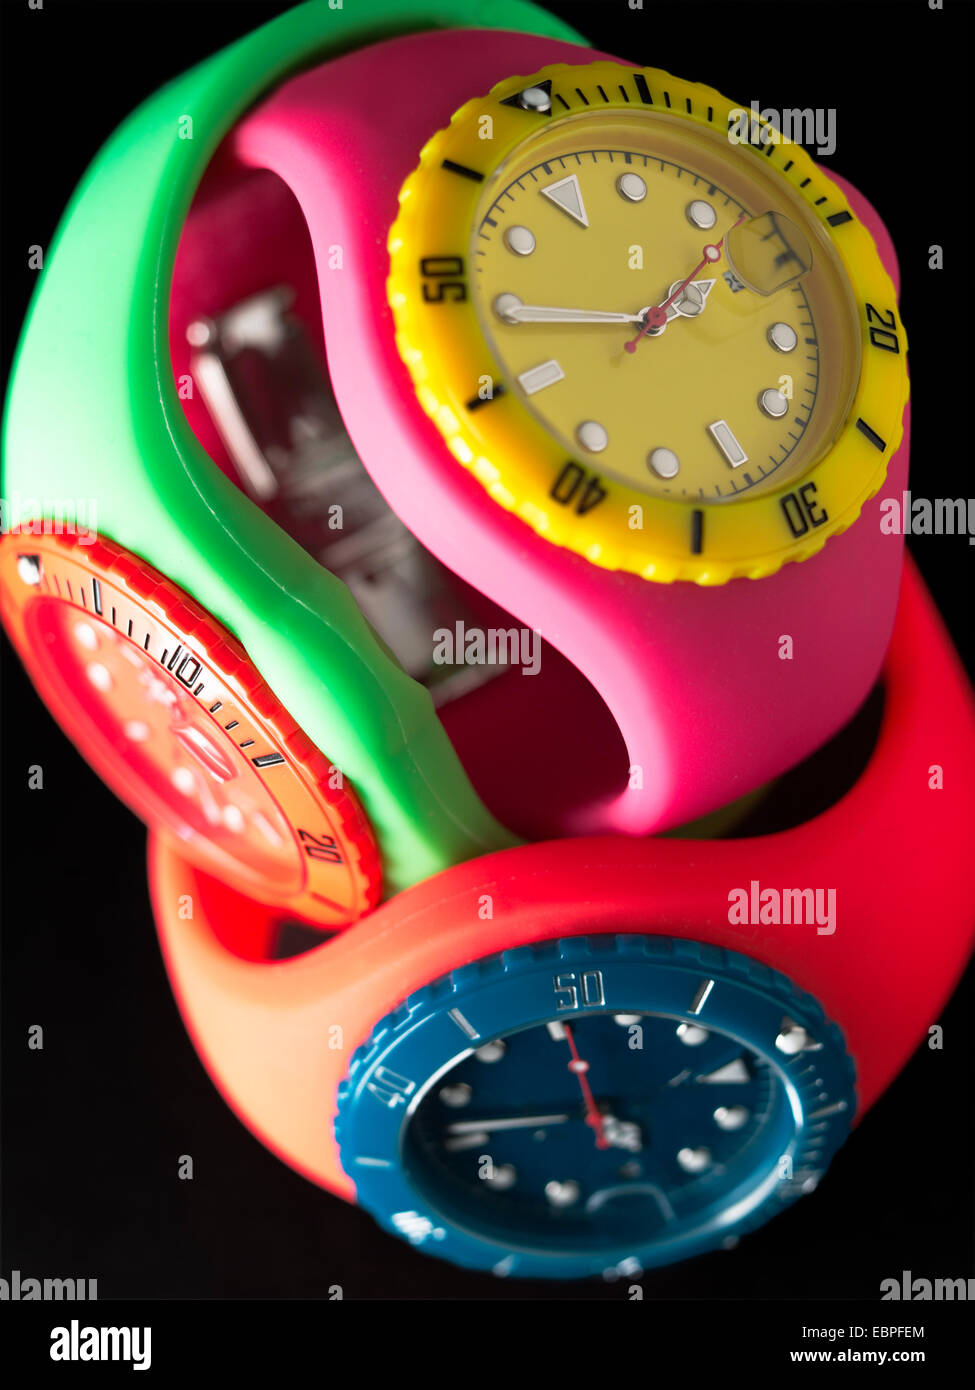 3 sports watches in neon colors - Stock Image